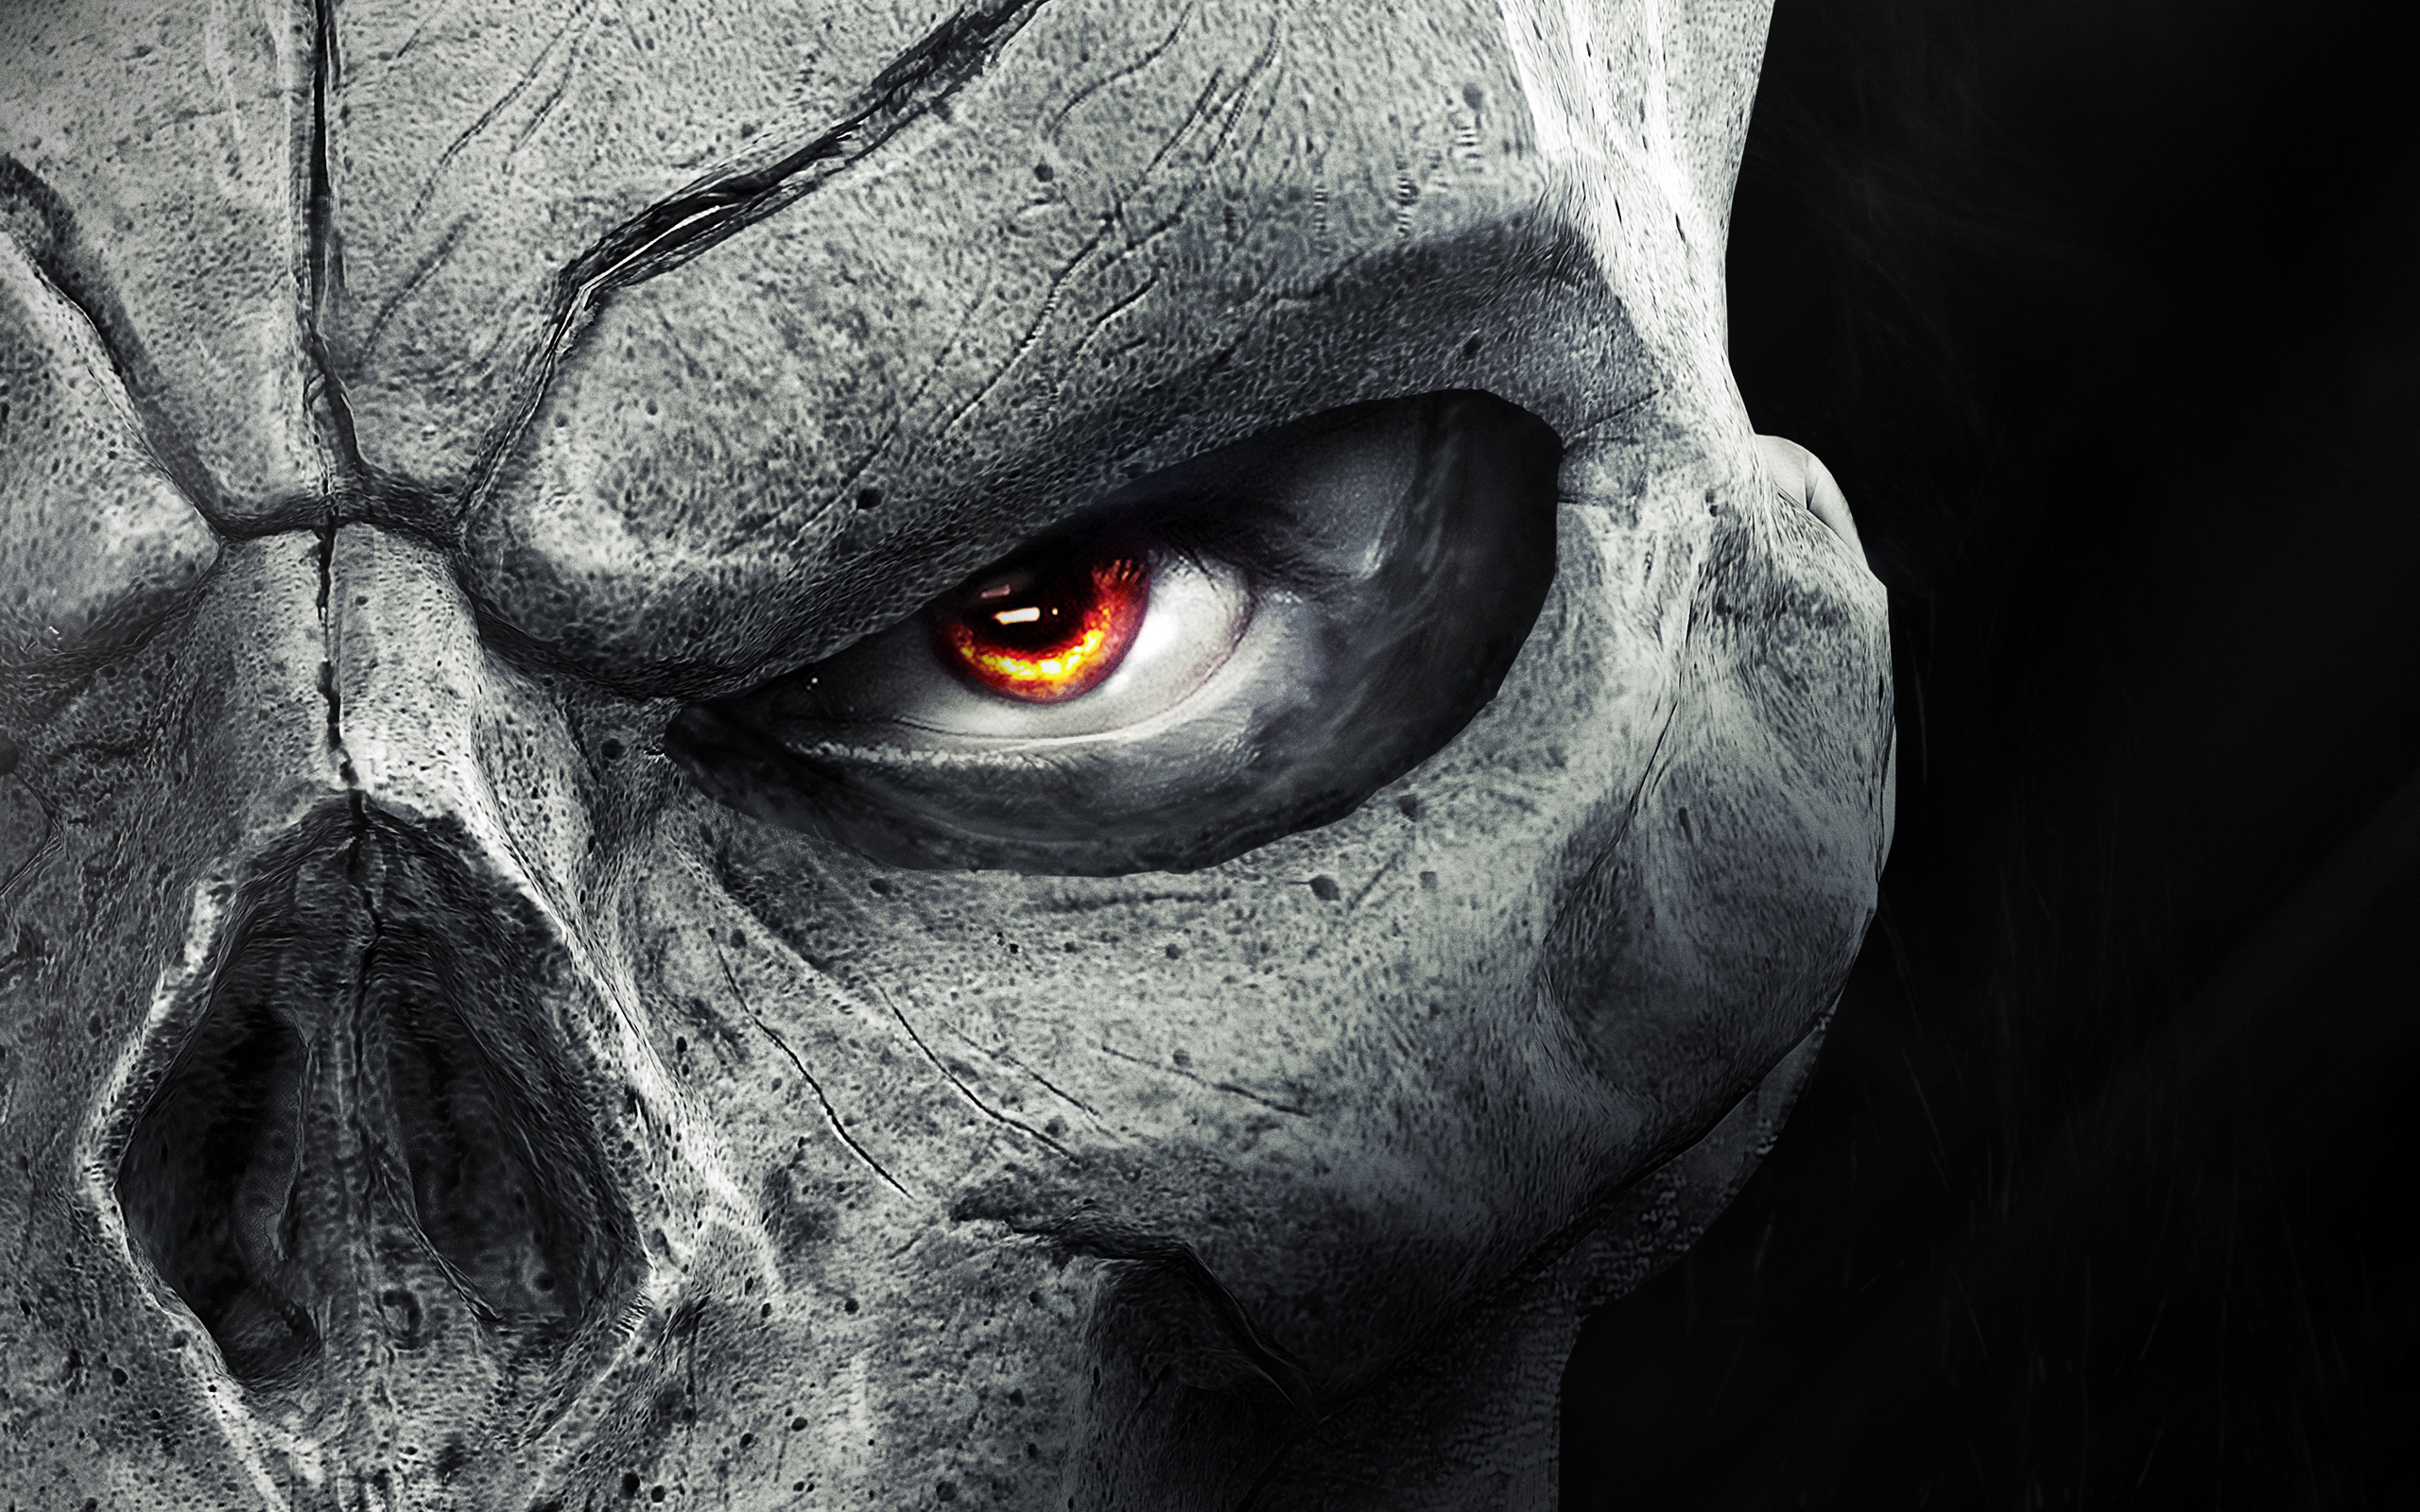 Darksiders 2 Video Game Wallpapers HD Wallpapers 2560x1600